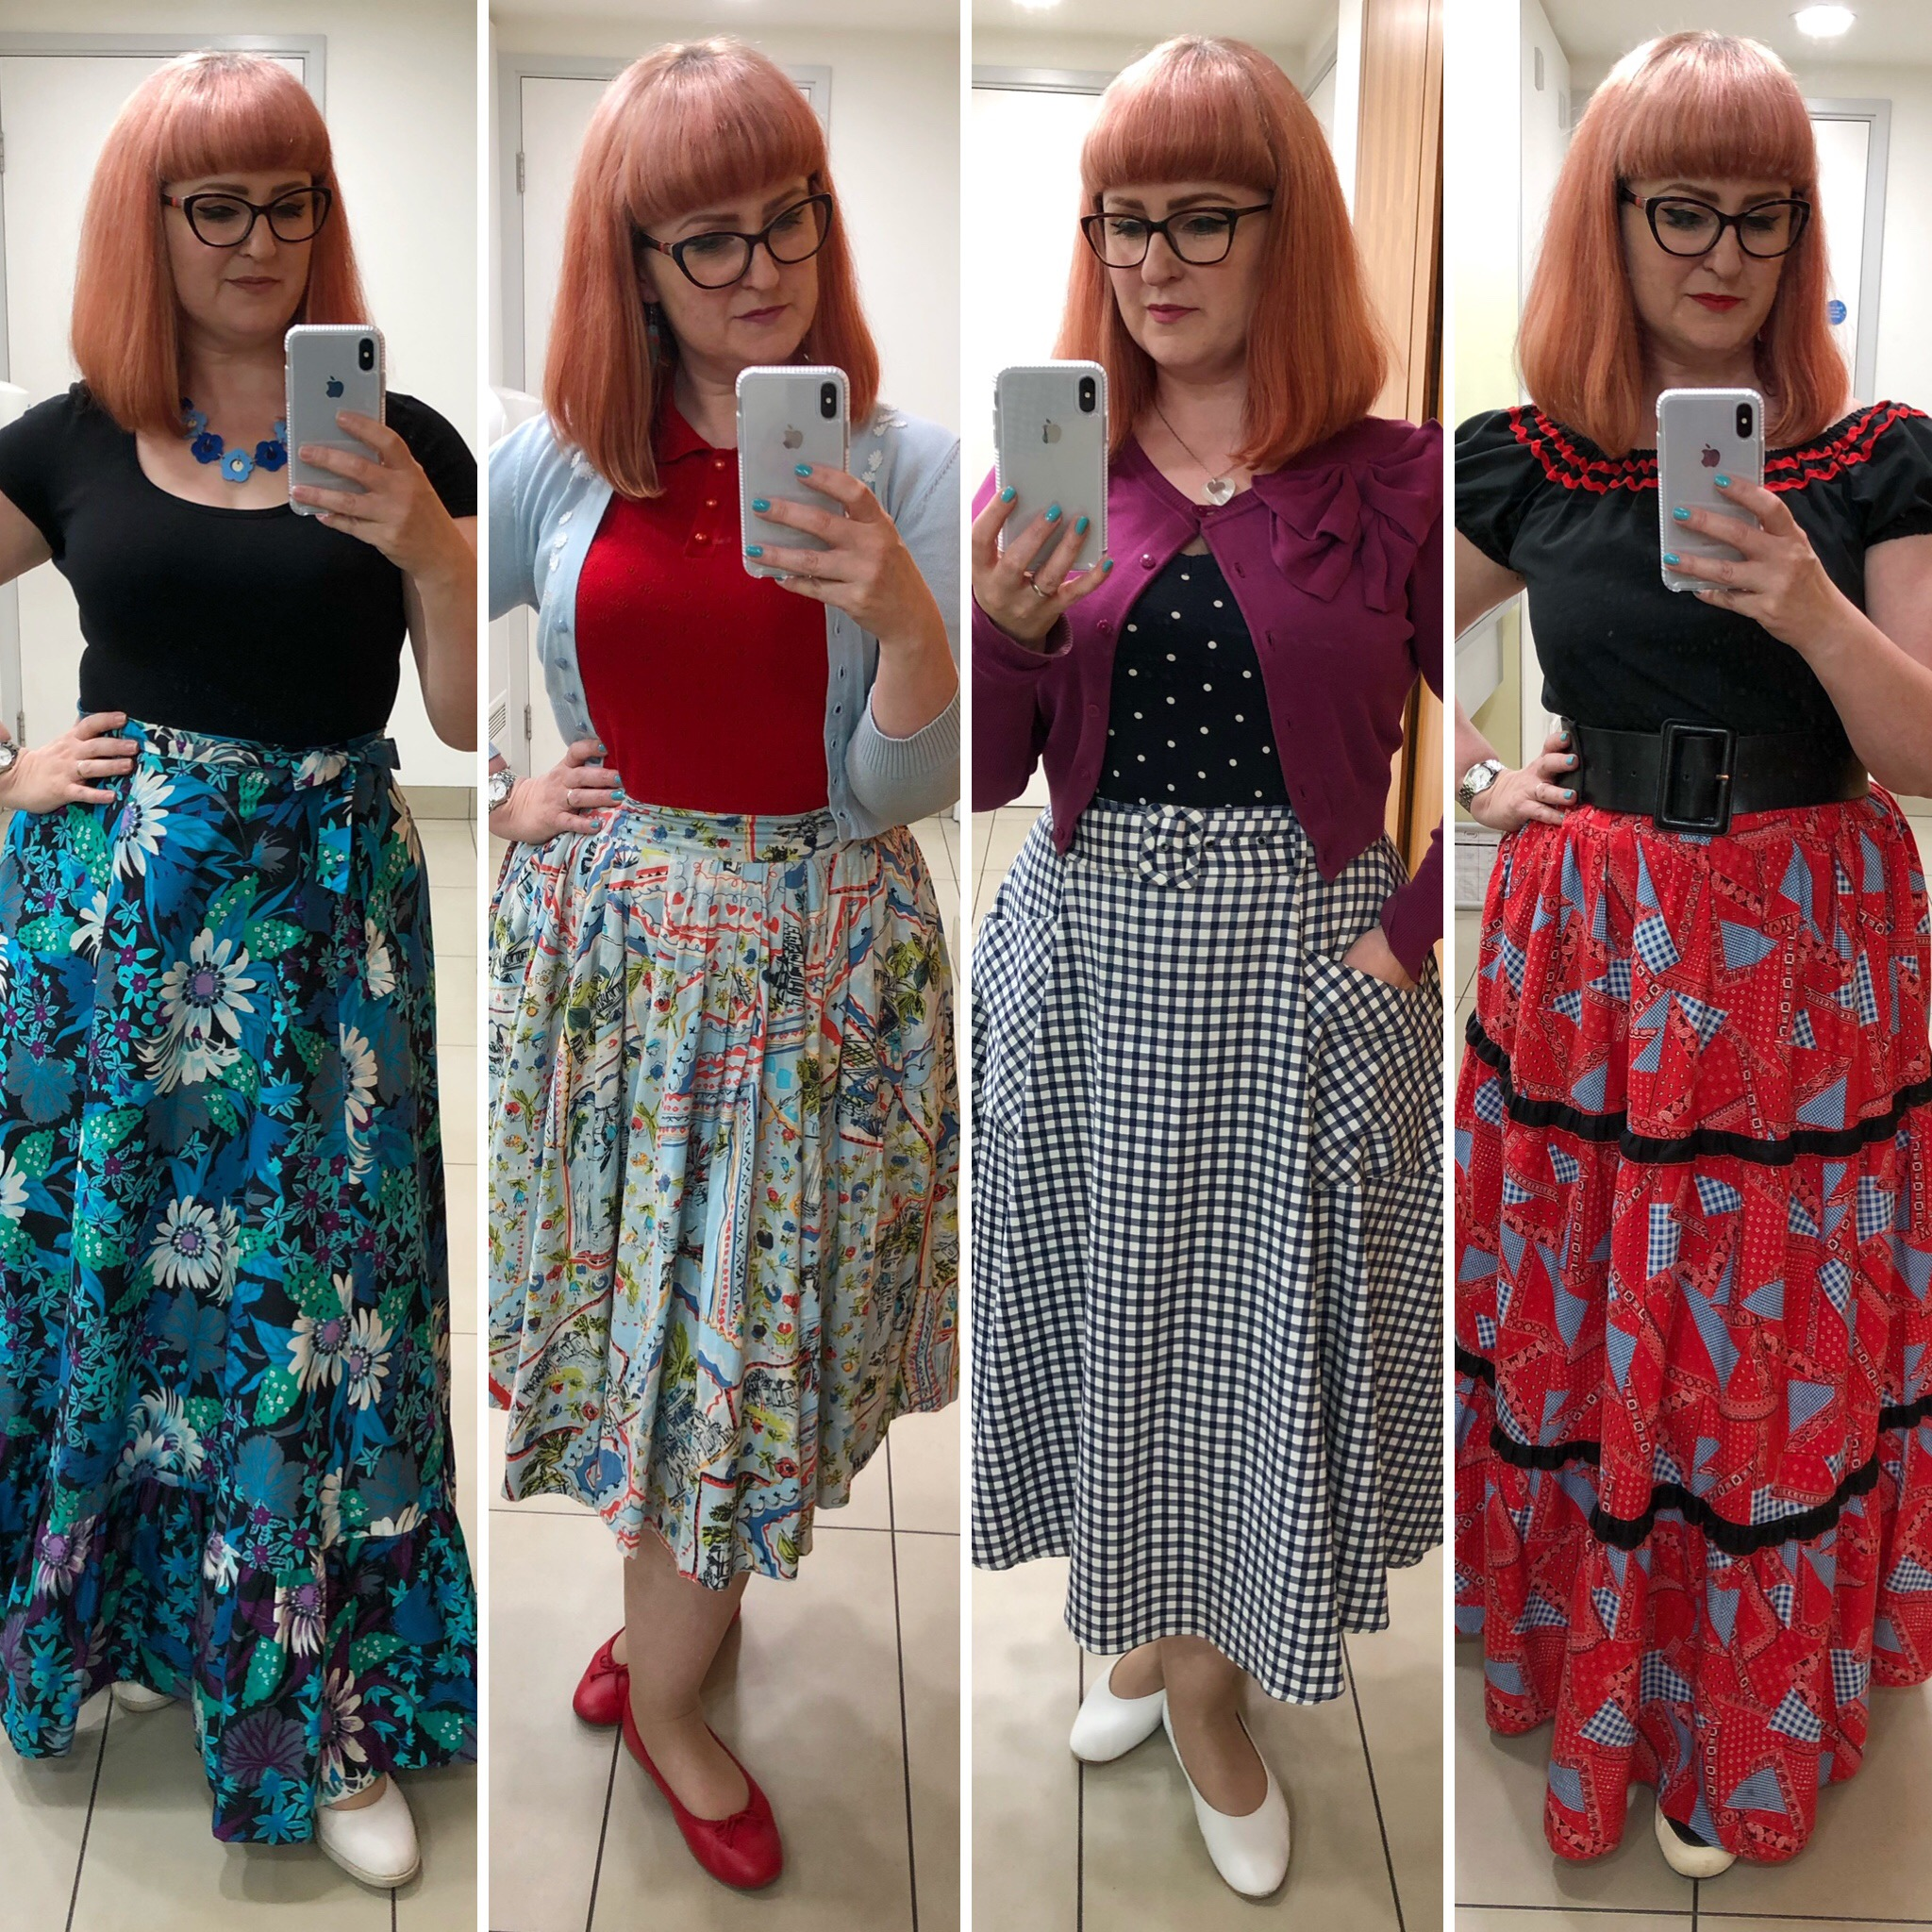 A selection of Lori's summer outfits